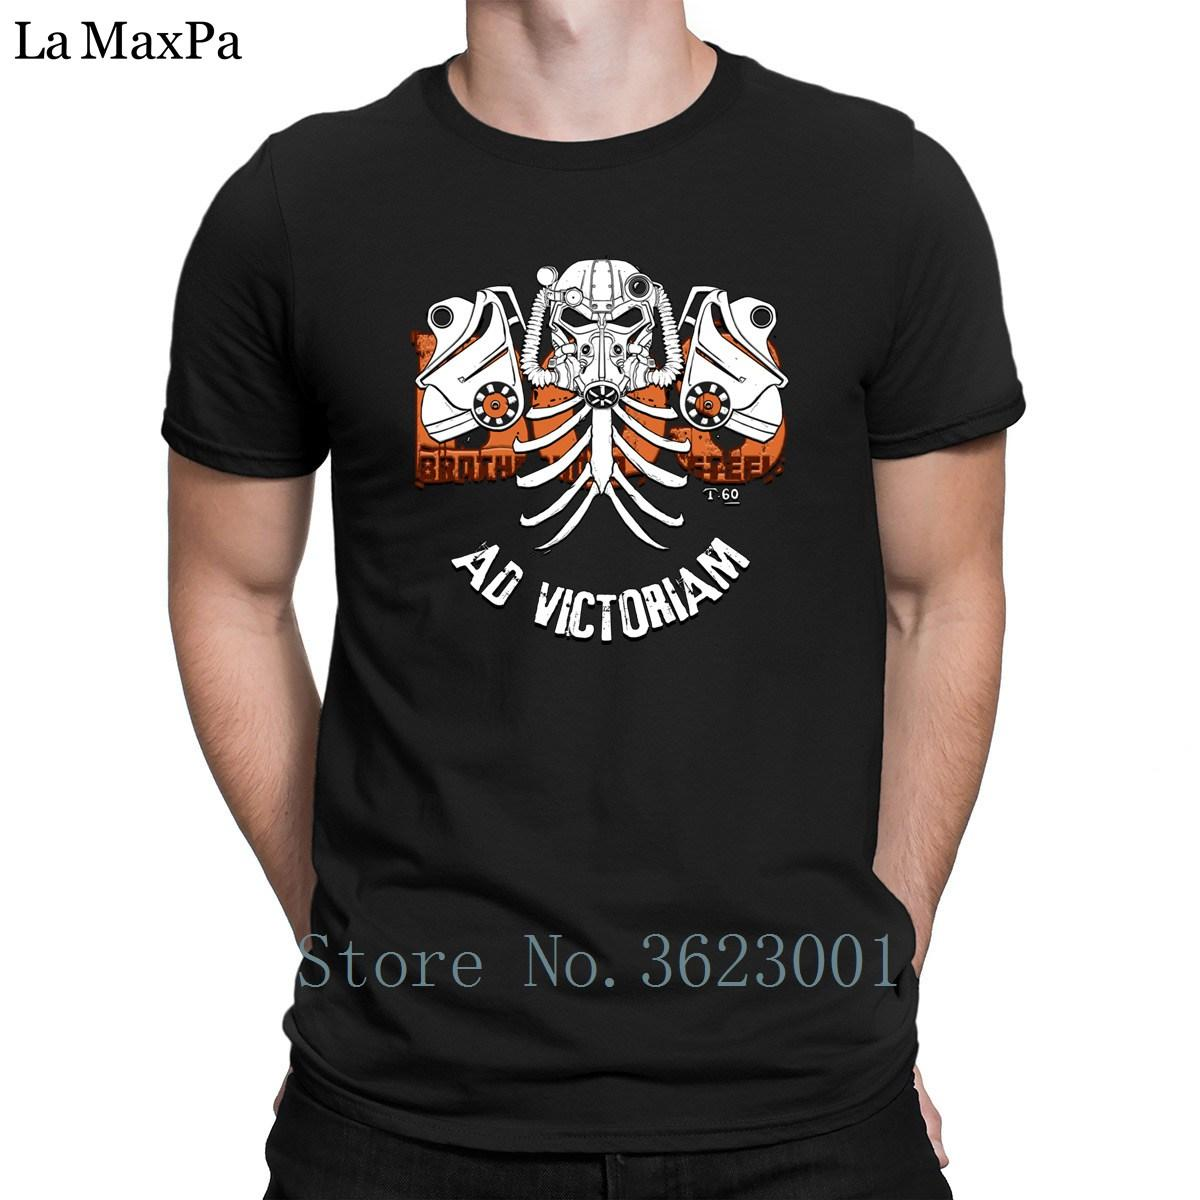 d05a690f4 Personalized Cotton Men'S T Shirt Ad Victoriam Men T Shirt Branded Summer Tee  Shirt For Mens Tee Tops Tee Shirt Trend Fashion Be Awesome T Shirt Print On  ...